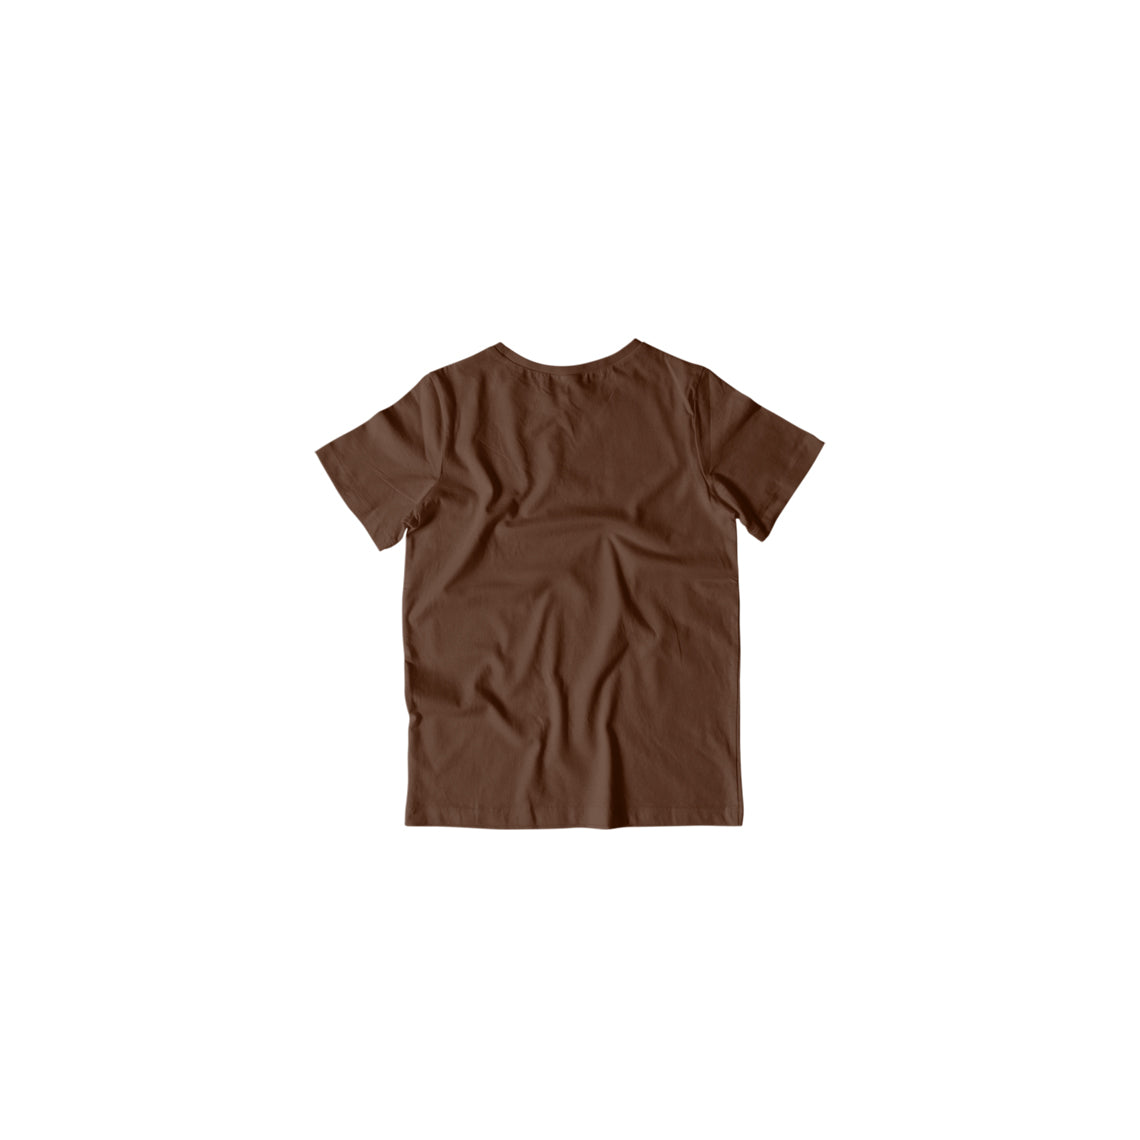 Toddler's Basics - Coffee Brown Half Sleeves Round Neck T-shirt